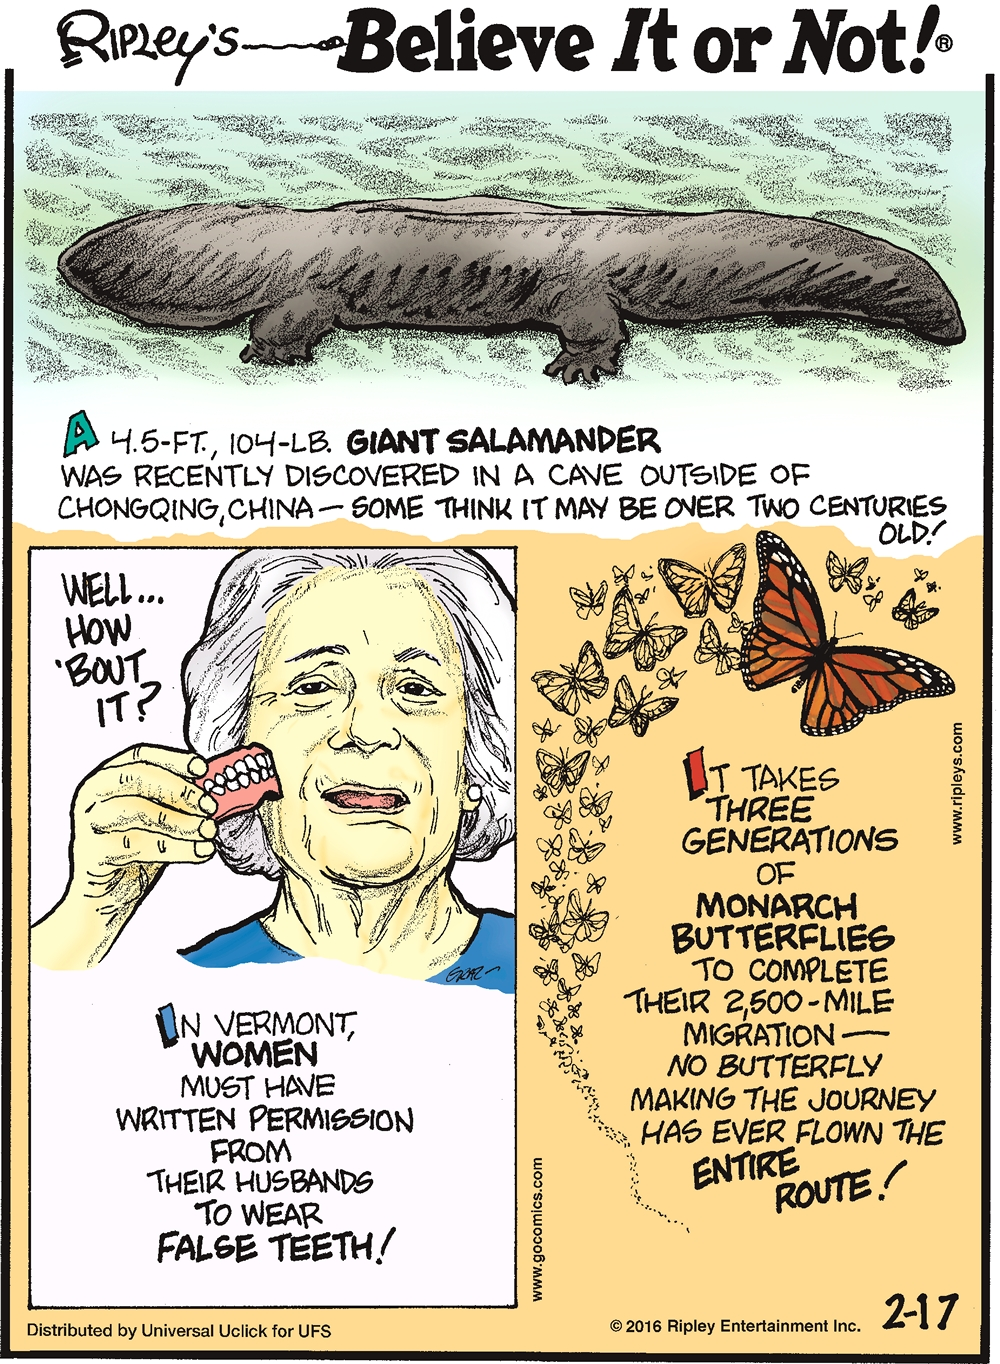 A 4.5-ft, 104-lb giant salamander was recently discovered in a cave outside of Chongquing, China—some think it may be over two centuries old! -------------------- In Vermont, women must have written permission from their husbands to wear false teeth! -------------------- It takes three generations of monarch butterflies to complete their 2,500-mile migration—no butterfly making the journey has ever flown the entire route!